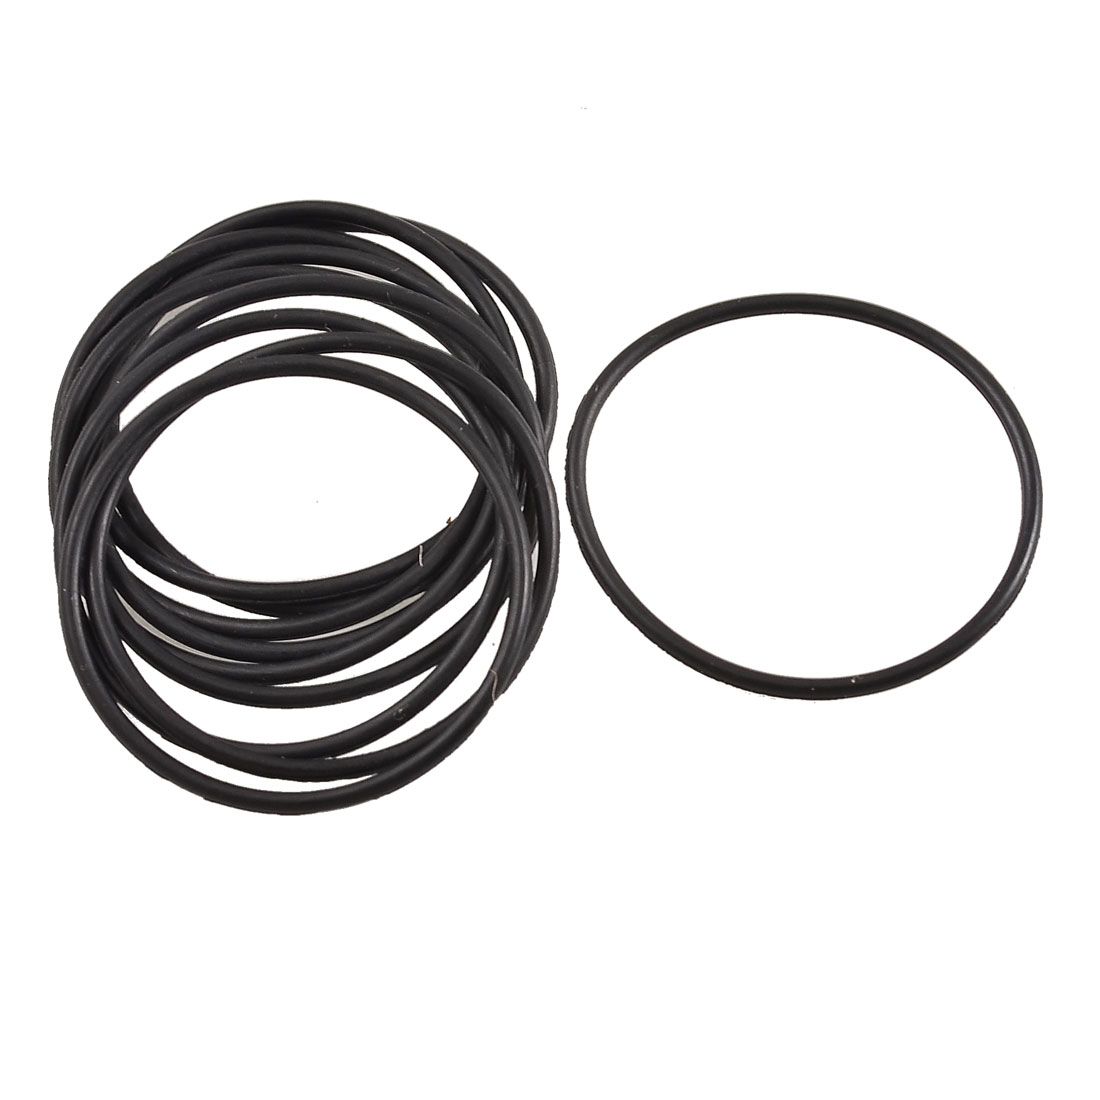 uxcell Rubber 75mm x 2.5mm Sealing Oil Filter Flexible O Rings Gaskets 10 pcs Black